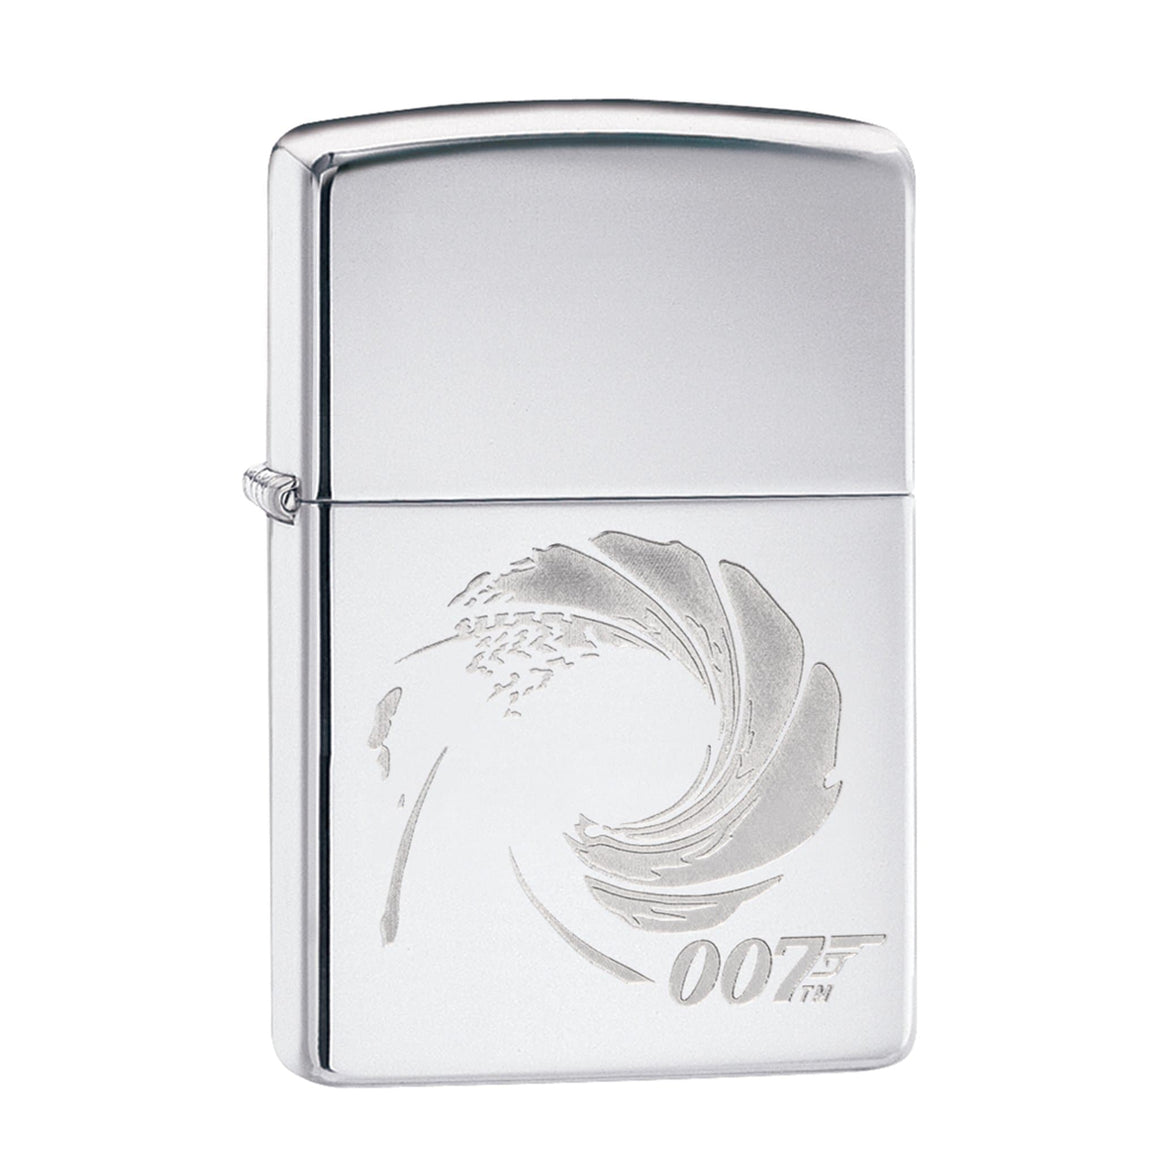 JAMES BOND ZIPPO LIGHTER (SILVER GUN BARREL)